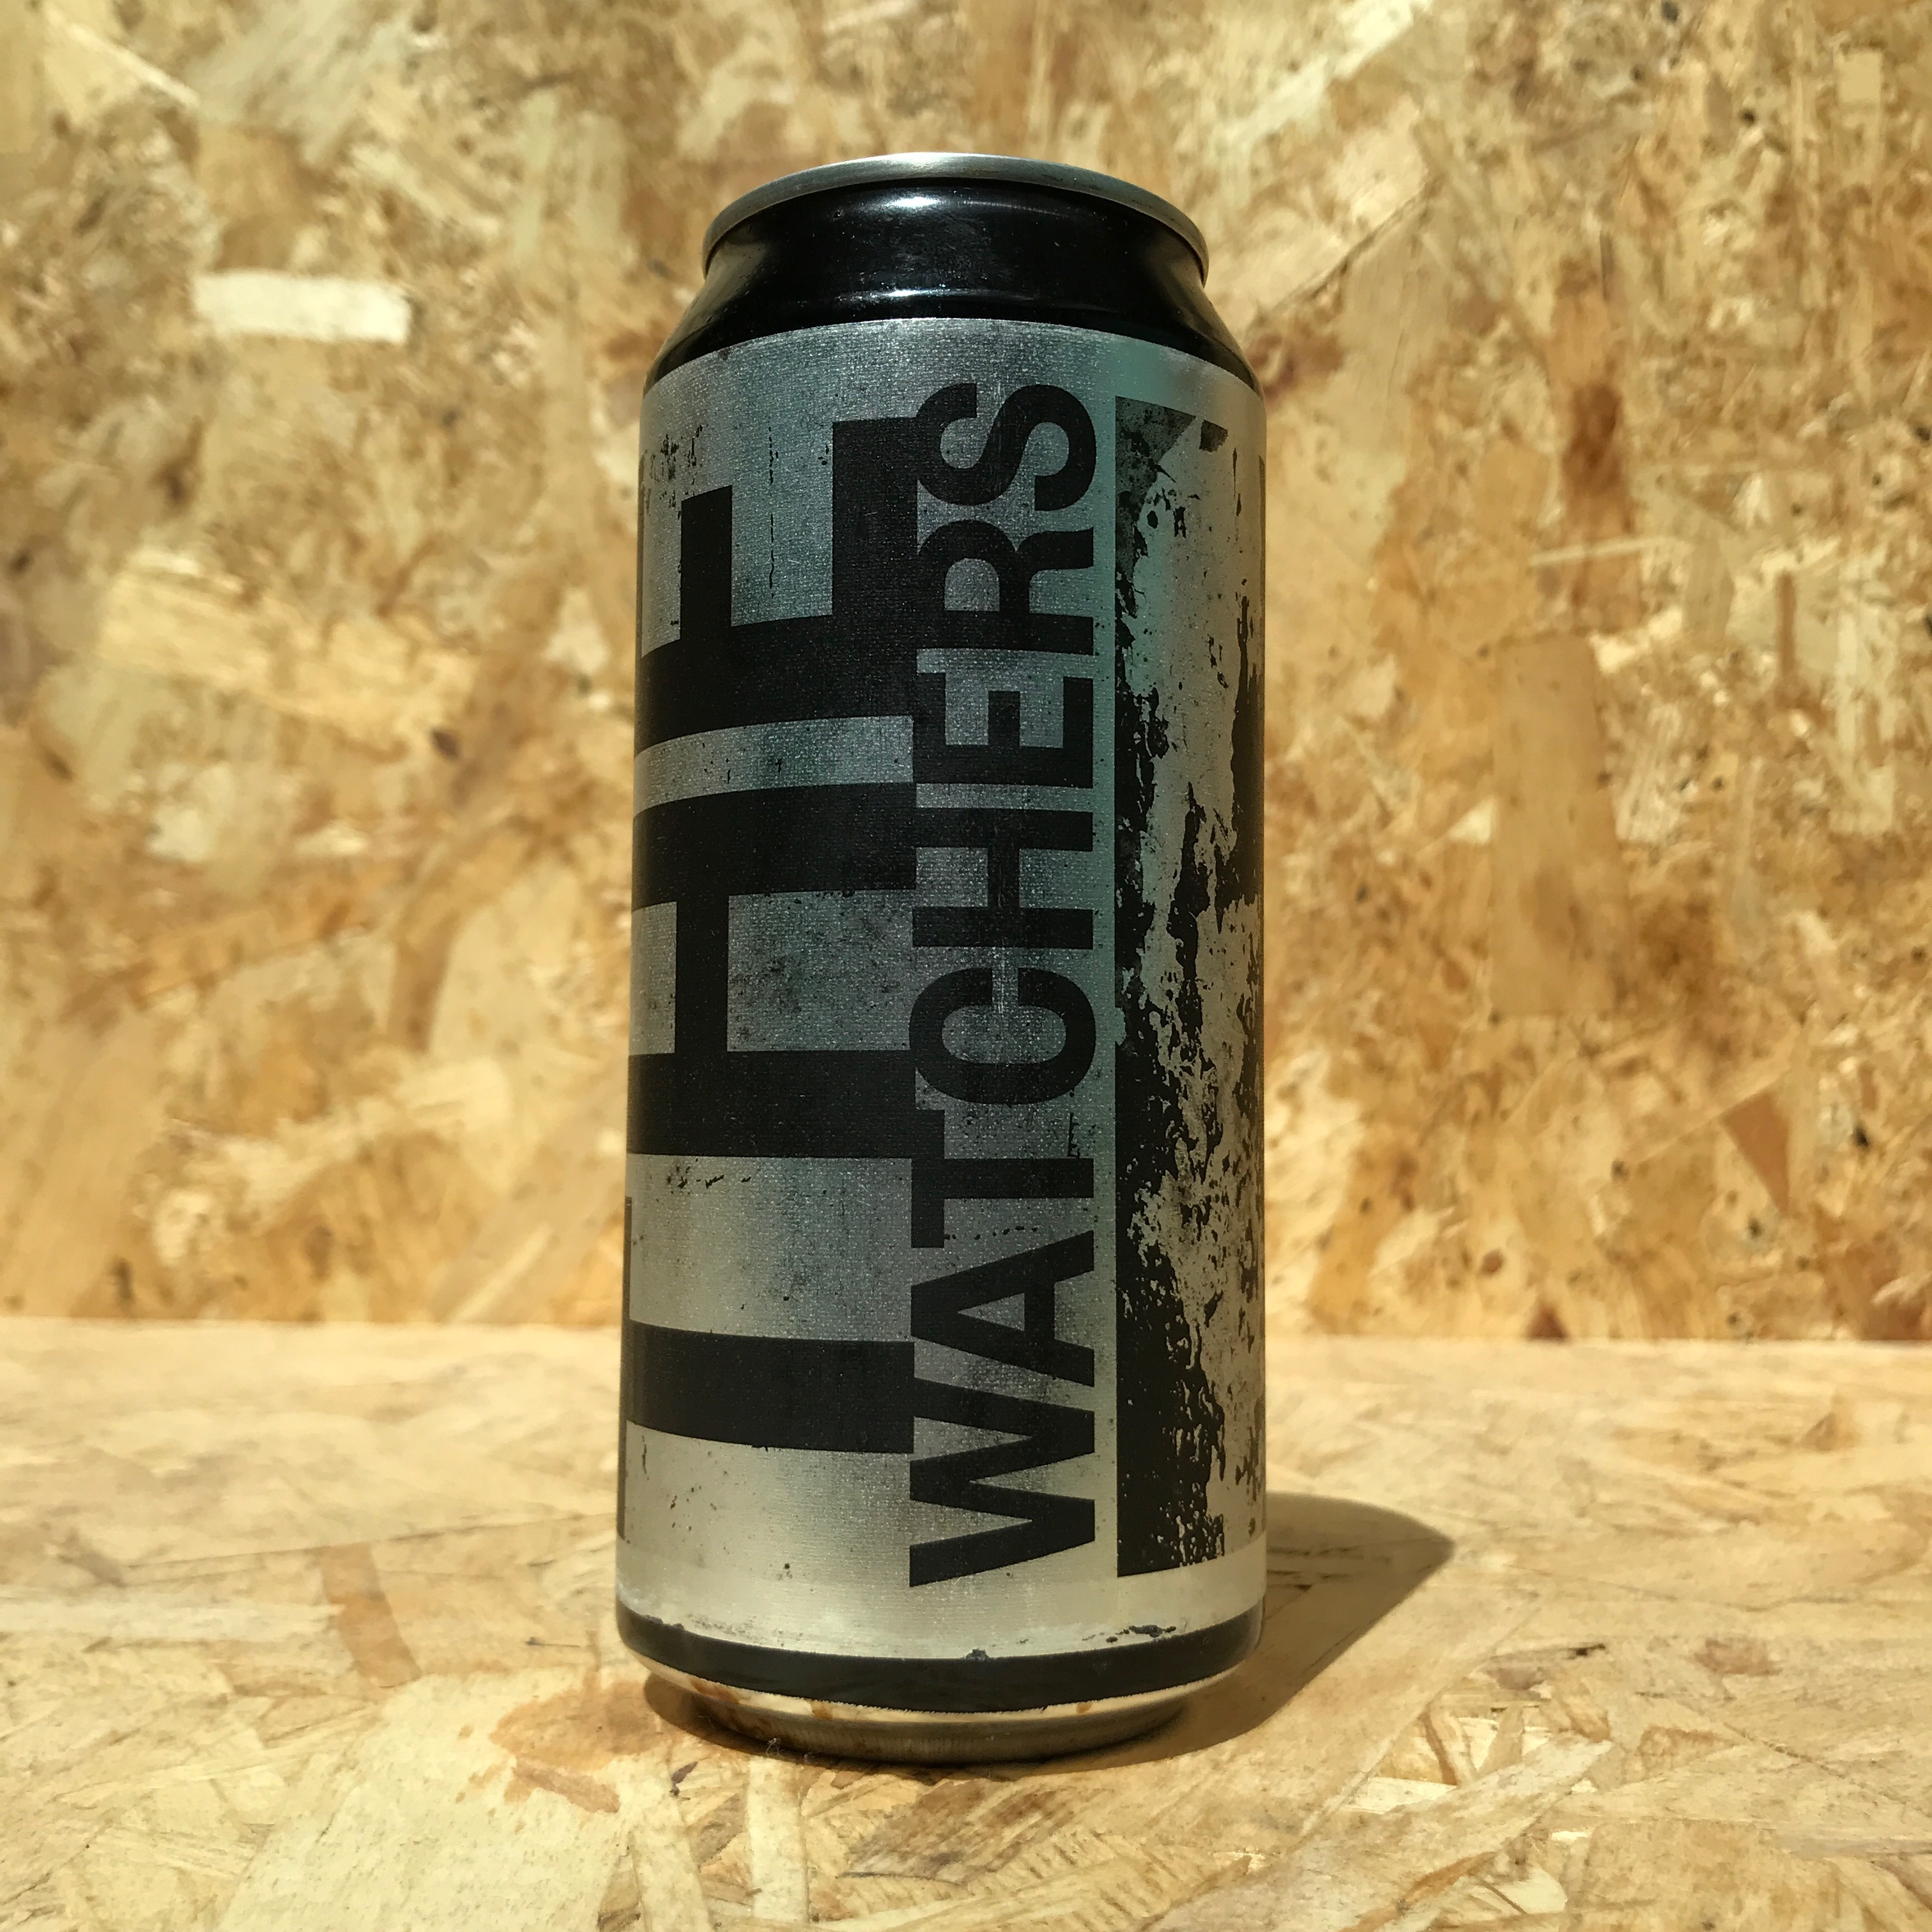 Dead End Brew Machine - The Watchers (Coffee and Cherry)